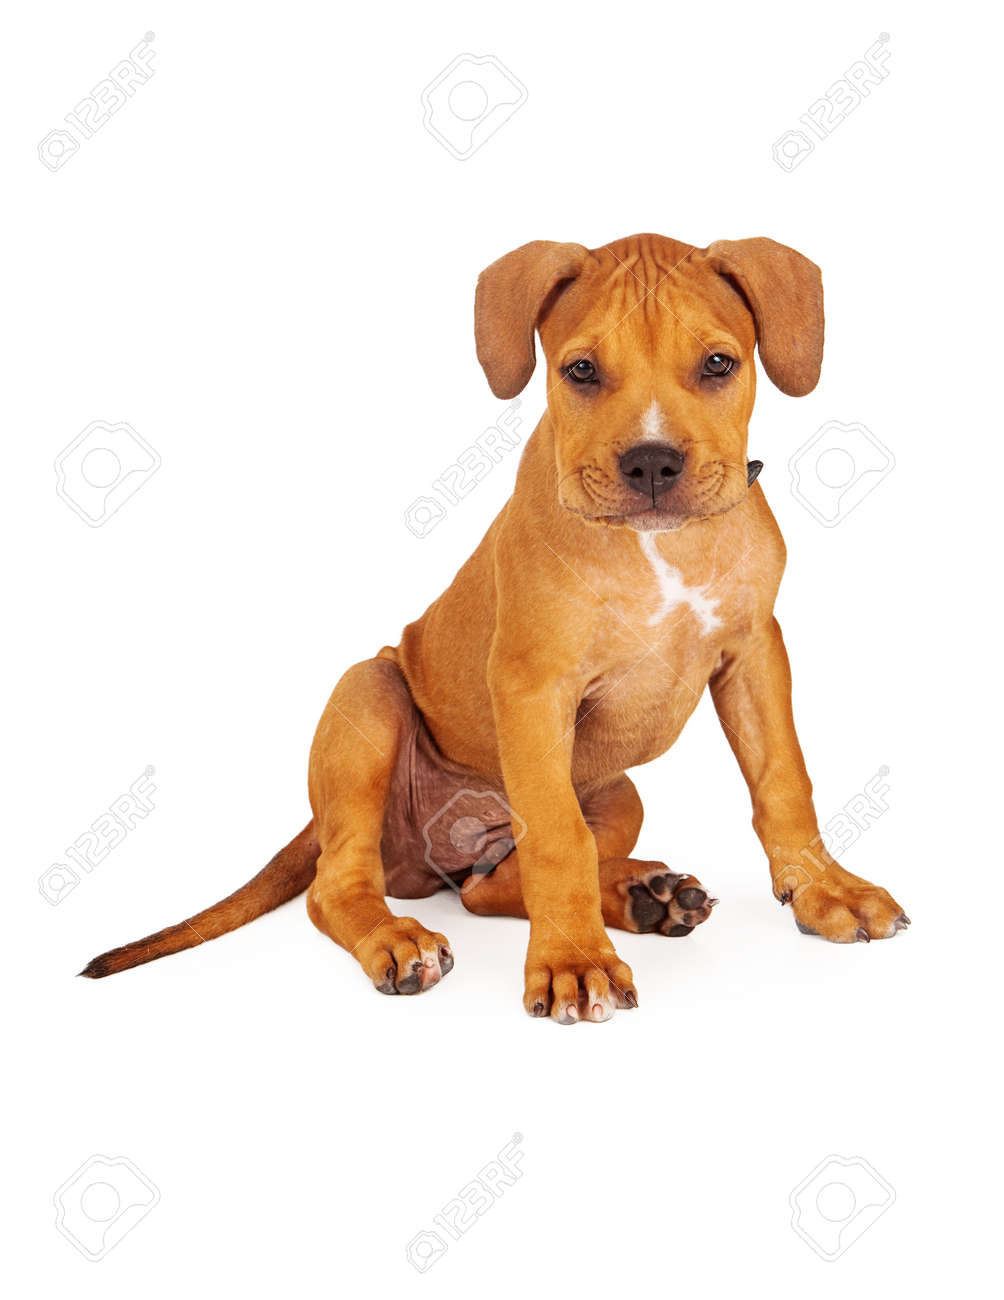 6dbe1a79a A cute ten week old Pit Bull breed puppy sitting against a white background  and looking